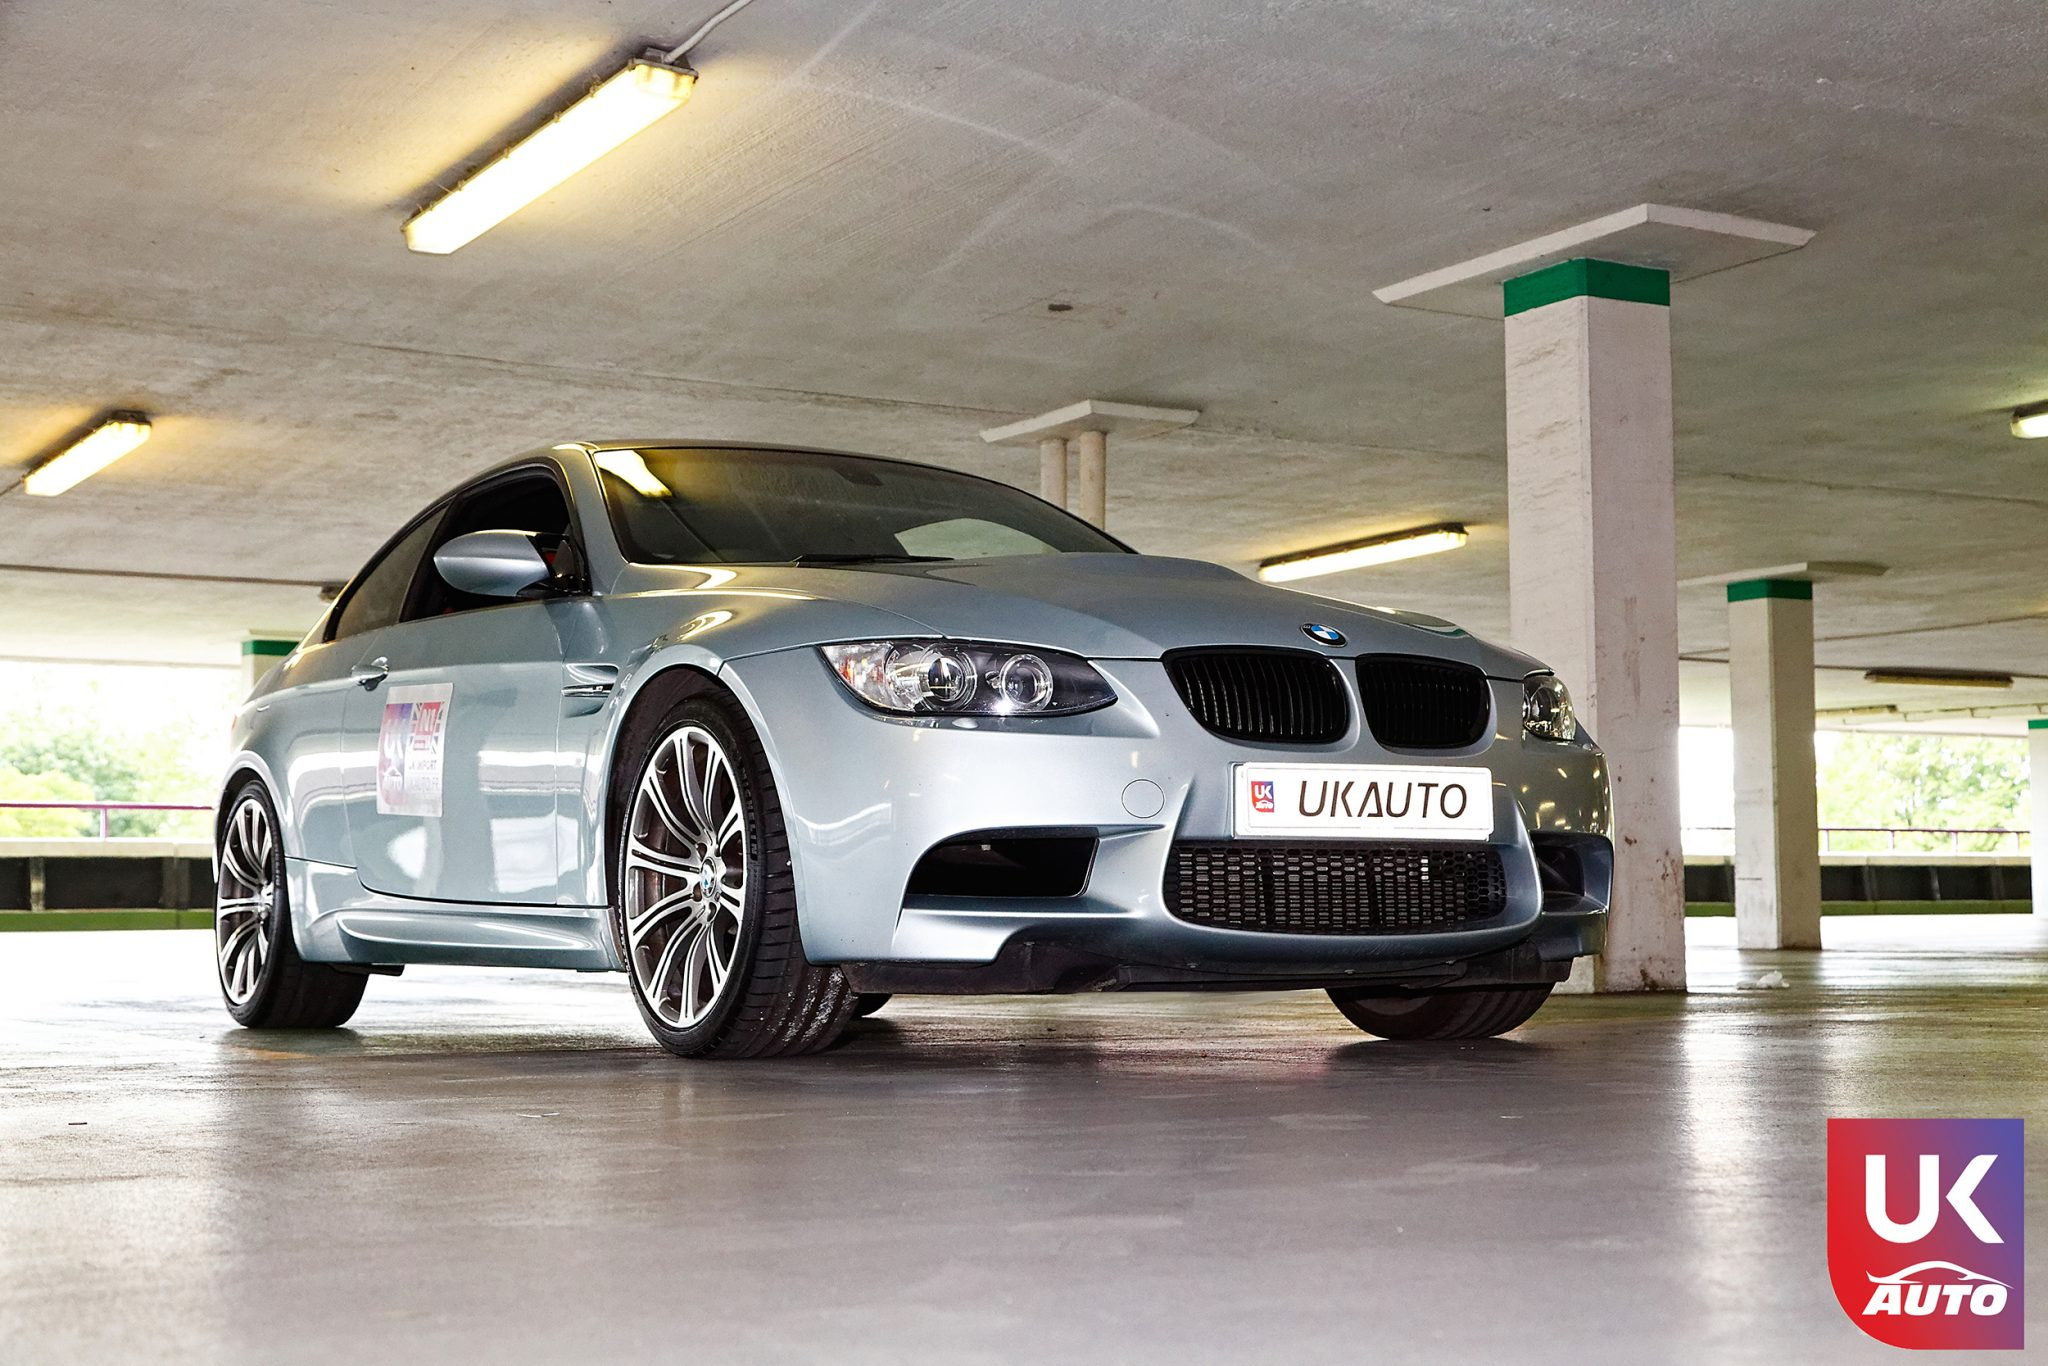 ukauto uk import bmw angleterre bmw m3 rhd e92 v8 mandataire uk angleterre voiture6 - Felicitation a Philippe BMW M3 E92 RHD POUR IMPORTER UNE VOITURE EN ANGLETERRE